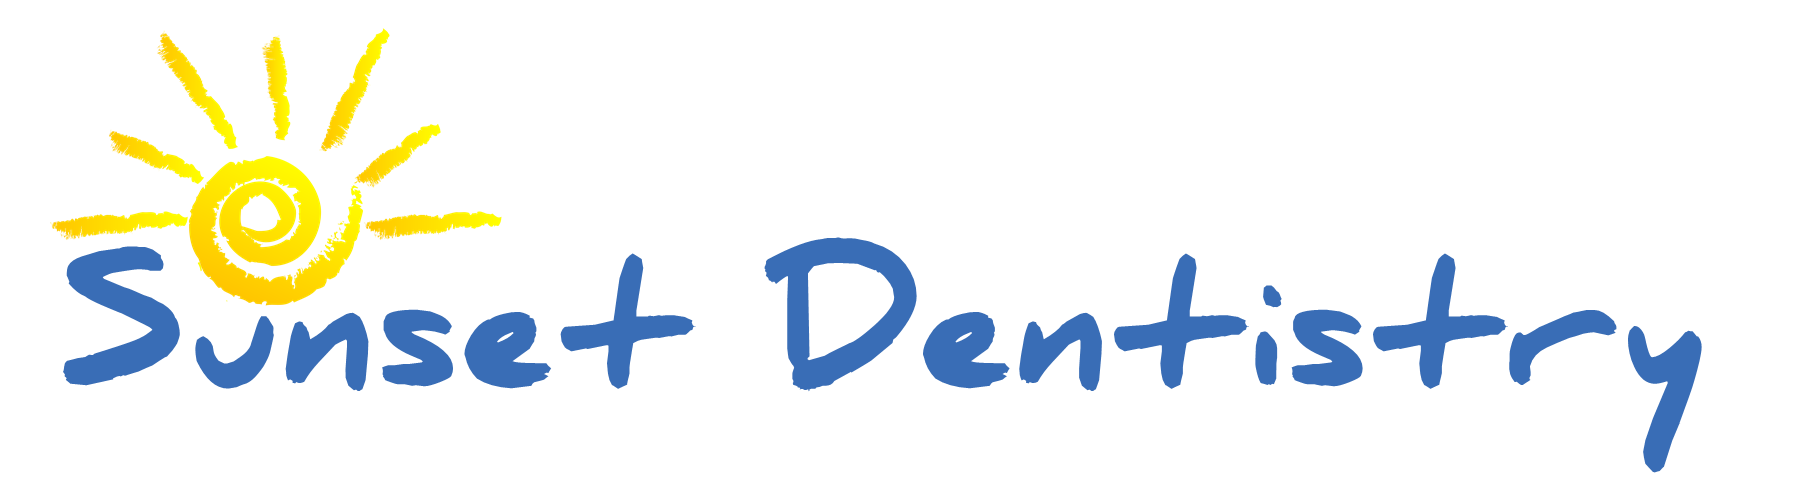 Sunset Dentistry | Affordable | Gentle | Kid Friendly